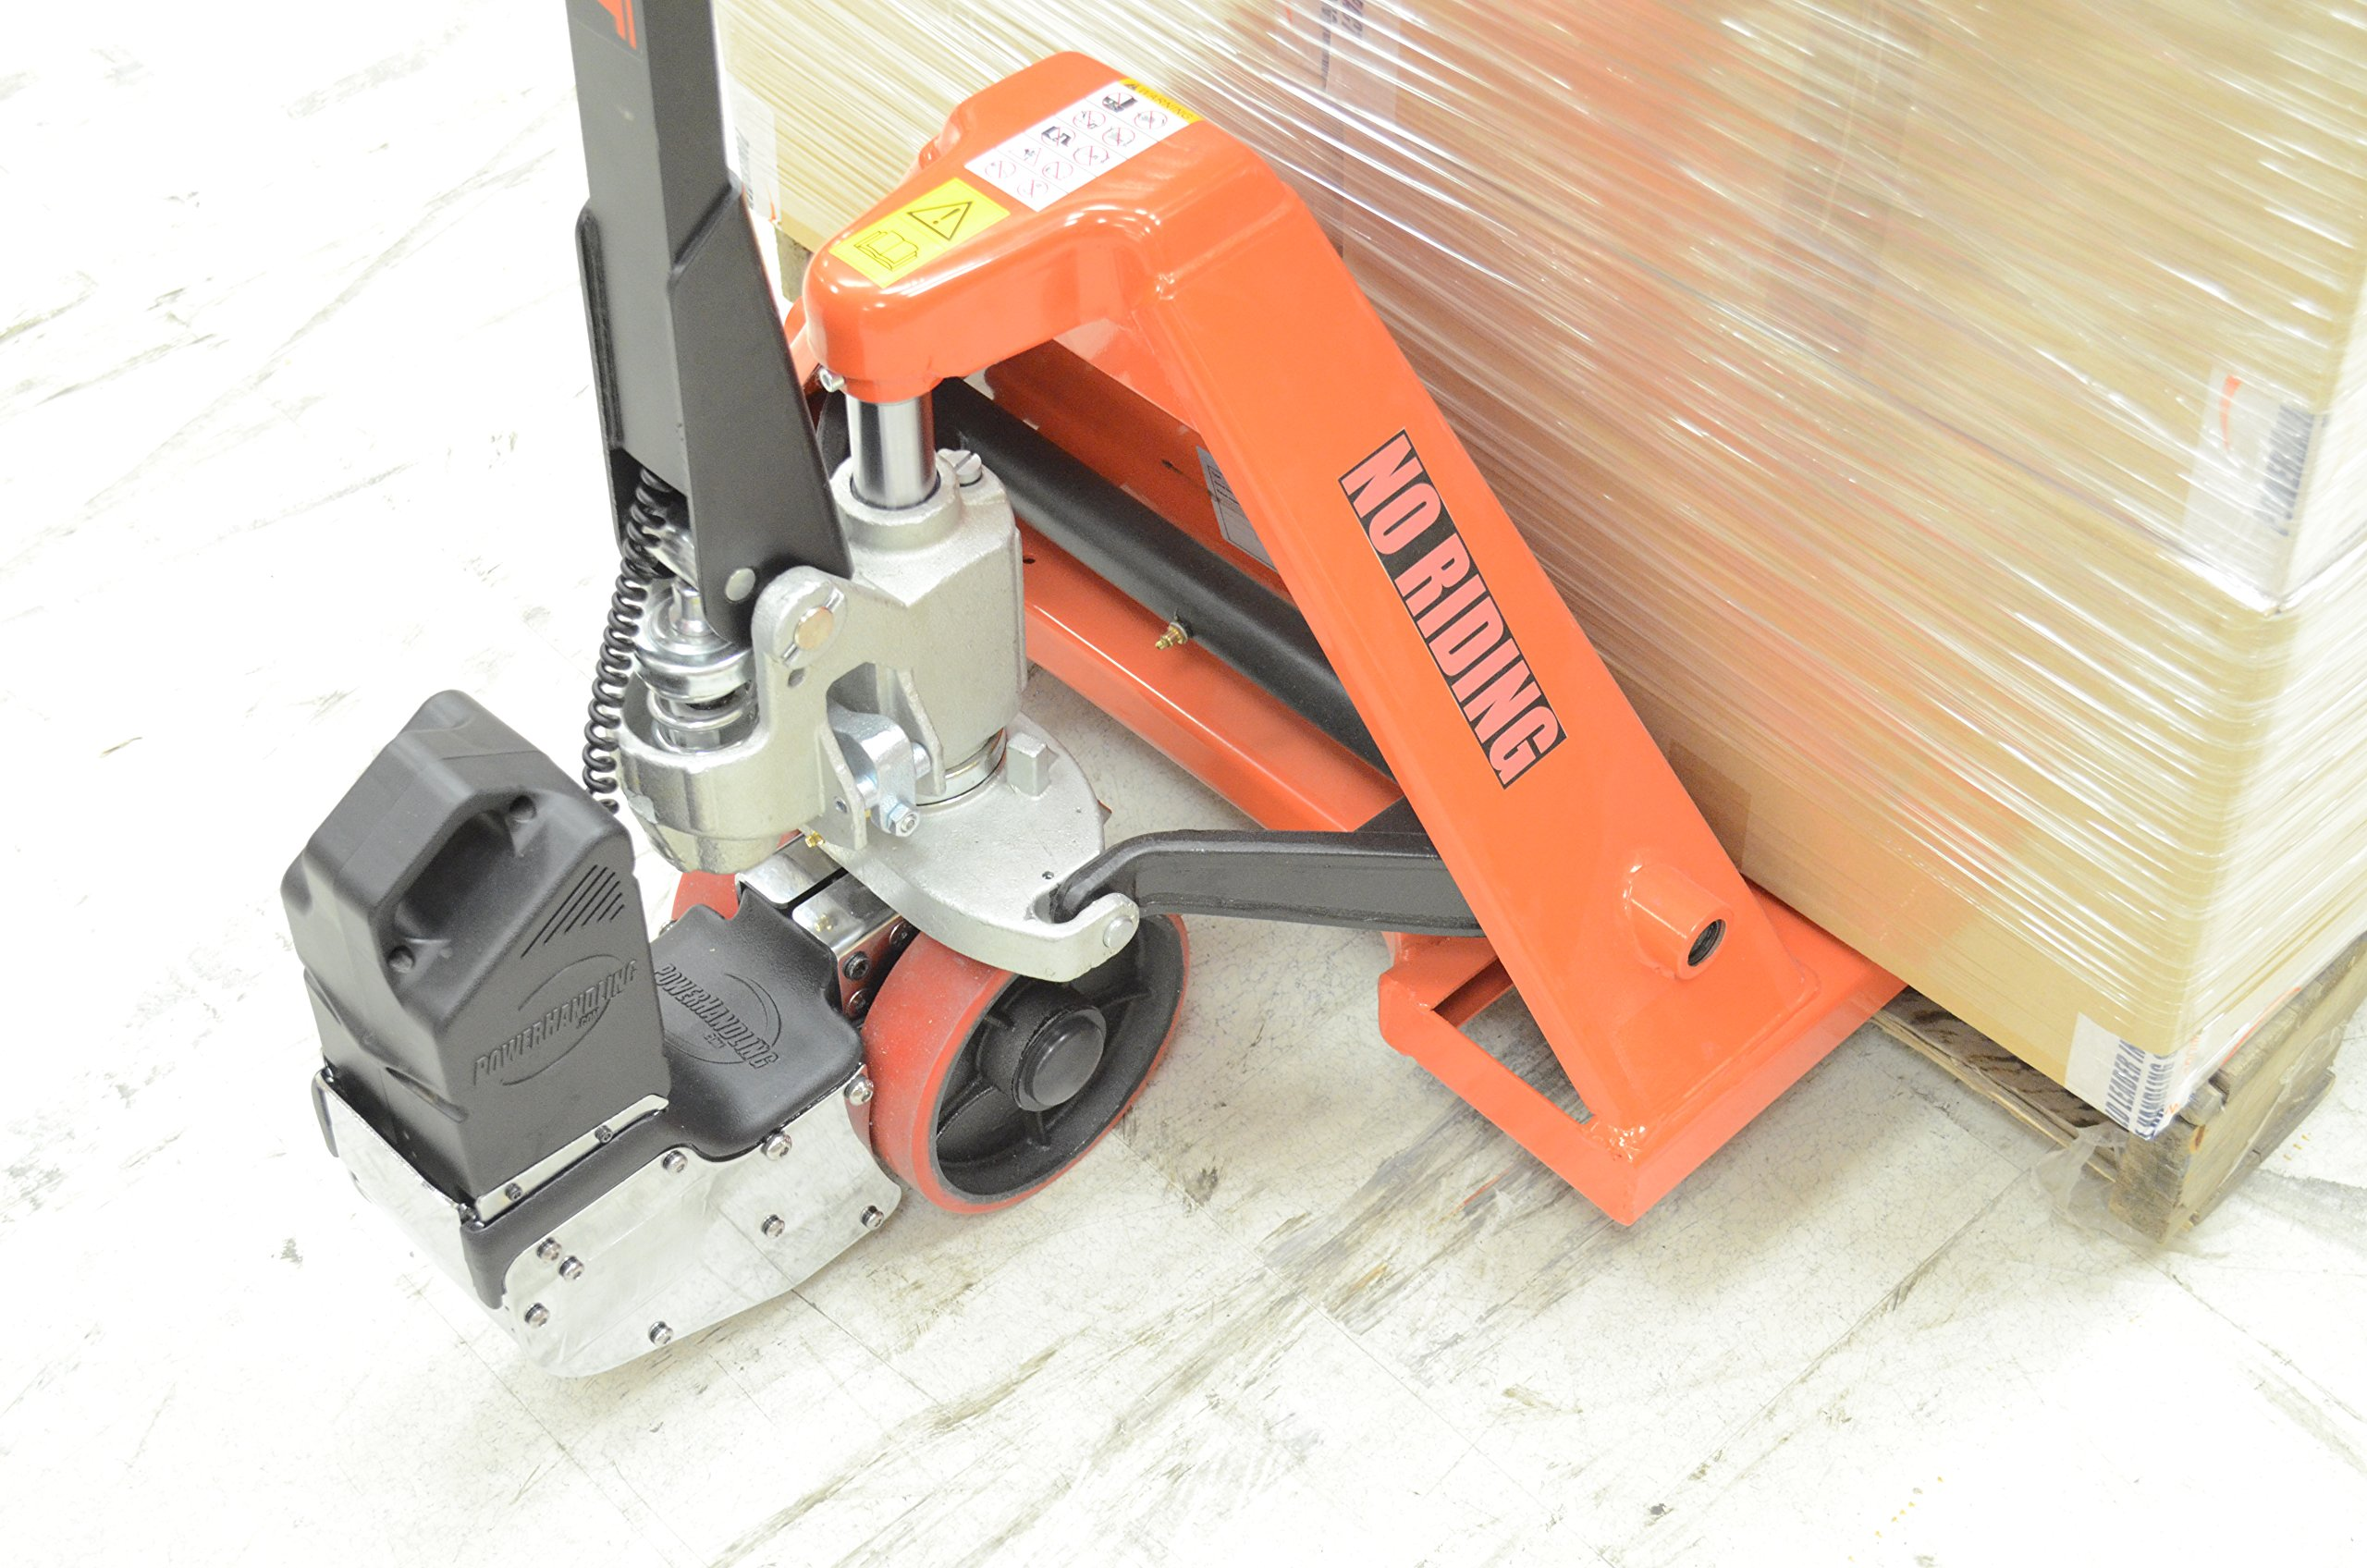 PowerPallet 2000 Mounted Kit: 3,500 pound rated 27'' x 48'' electric pallet jack by PowerPallet (Image #4)